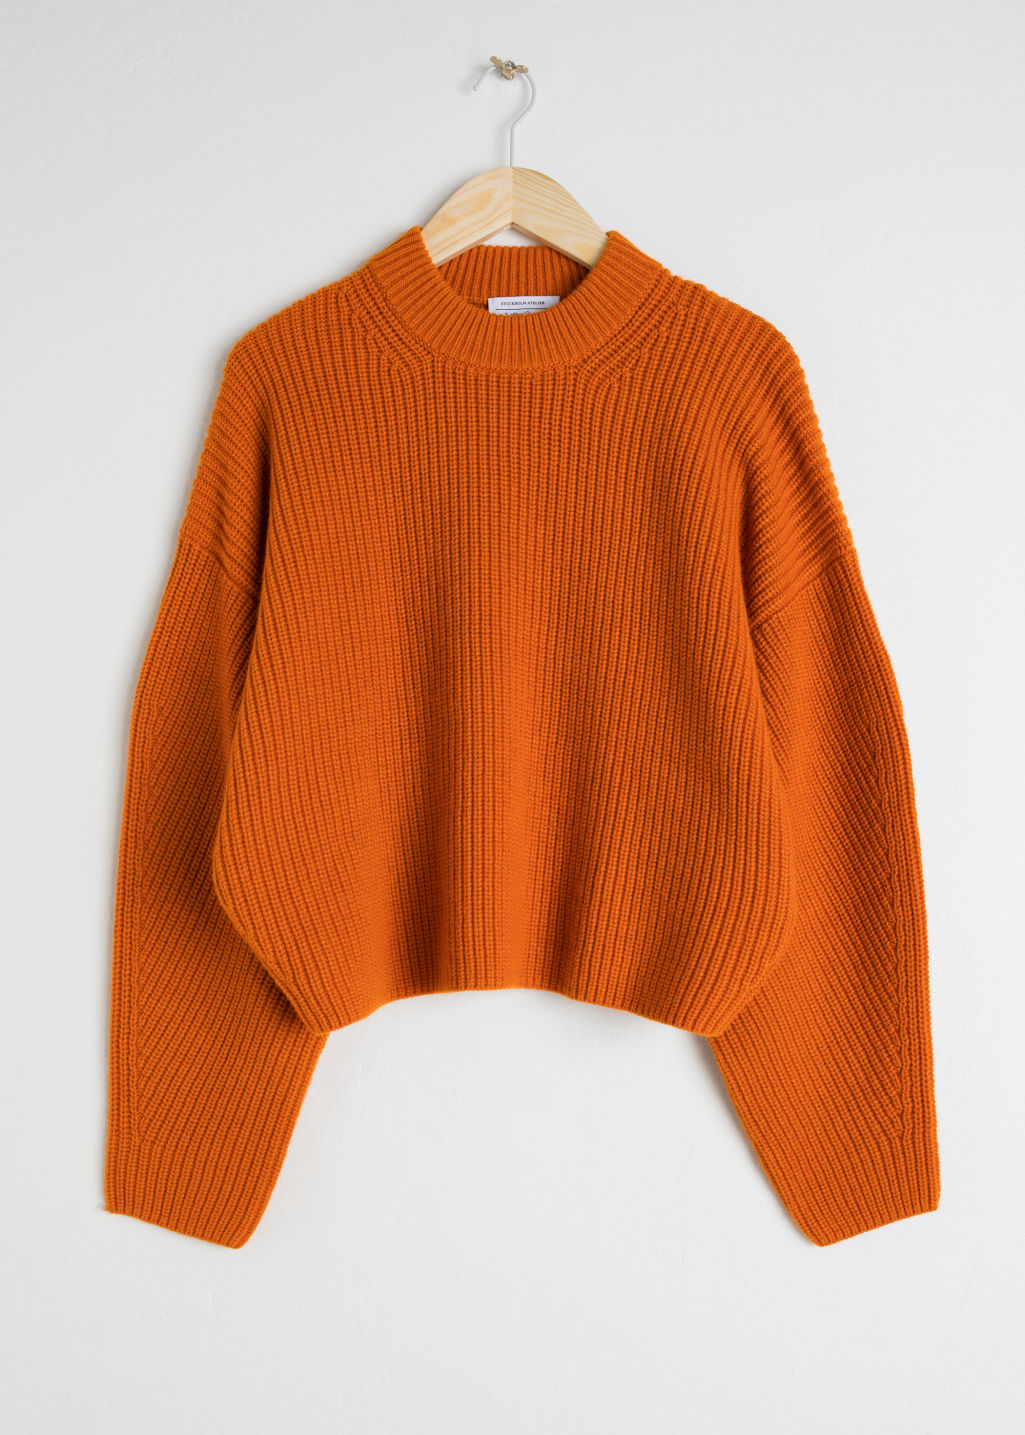 Wool Blend Rib Knit Sweater